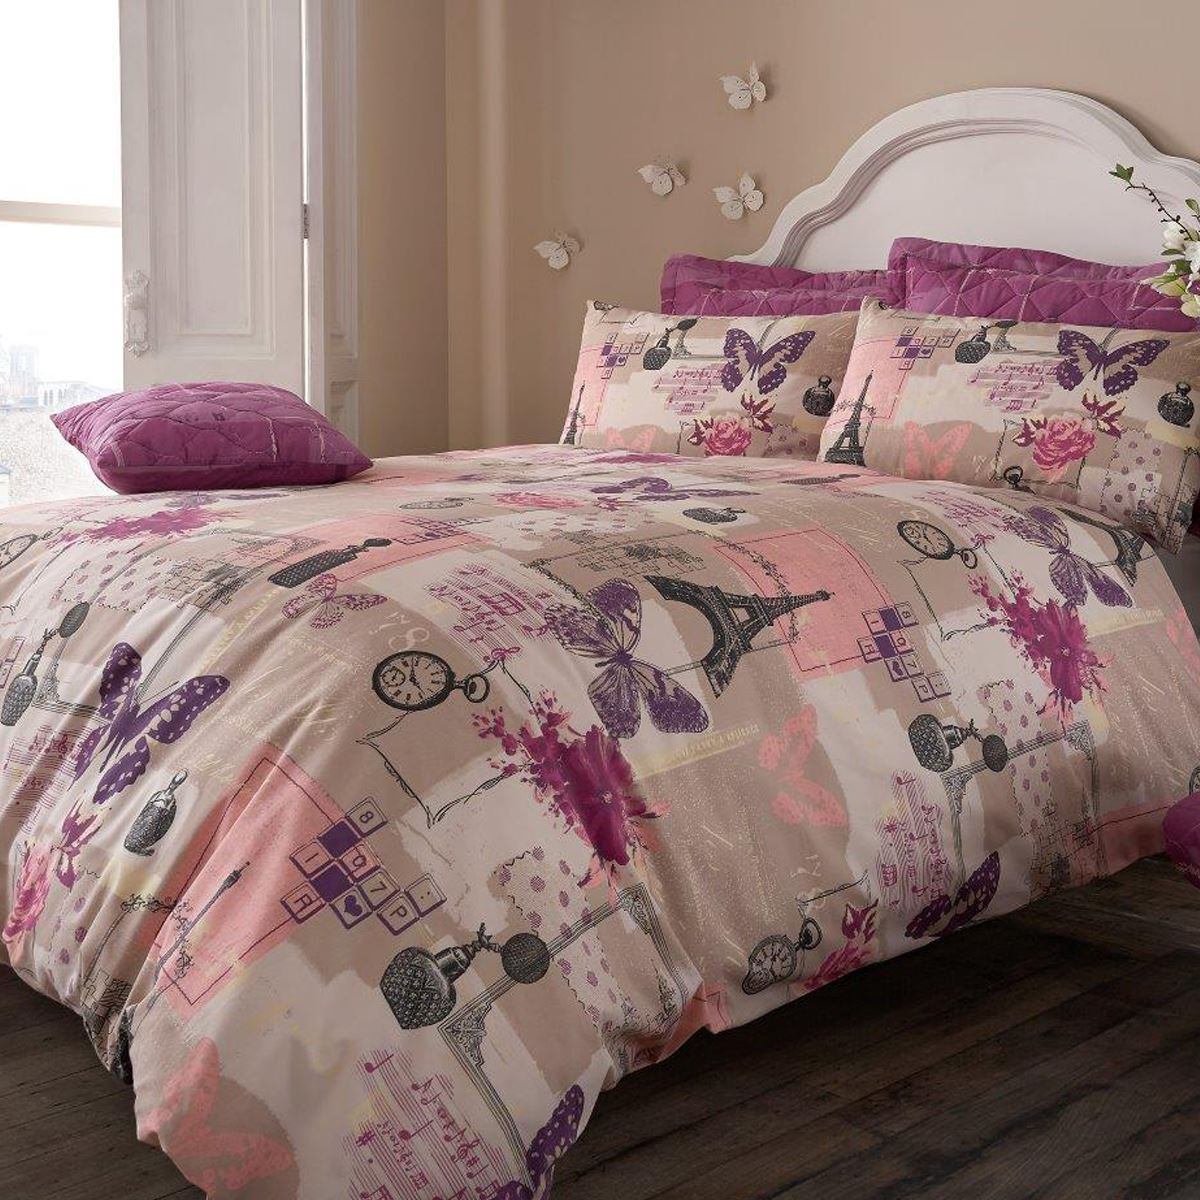 Beautiful Printed Duvet Quilt Cover Pillowcase Bedding Set Ebay